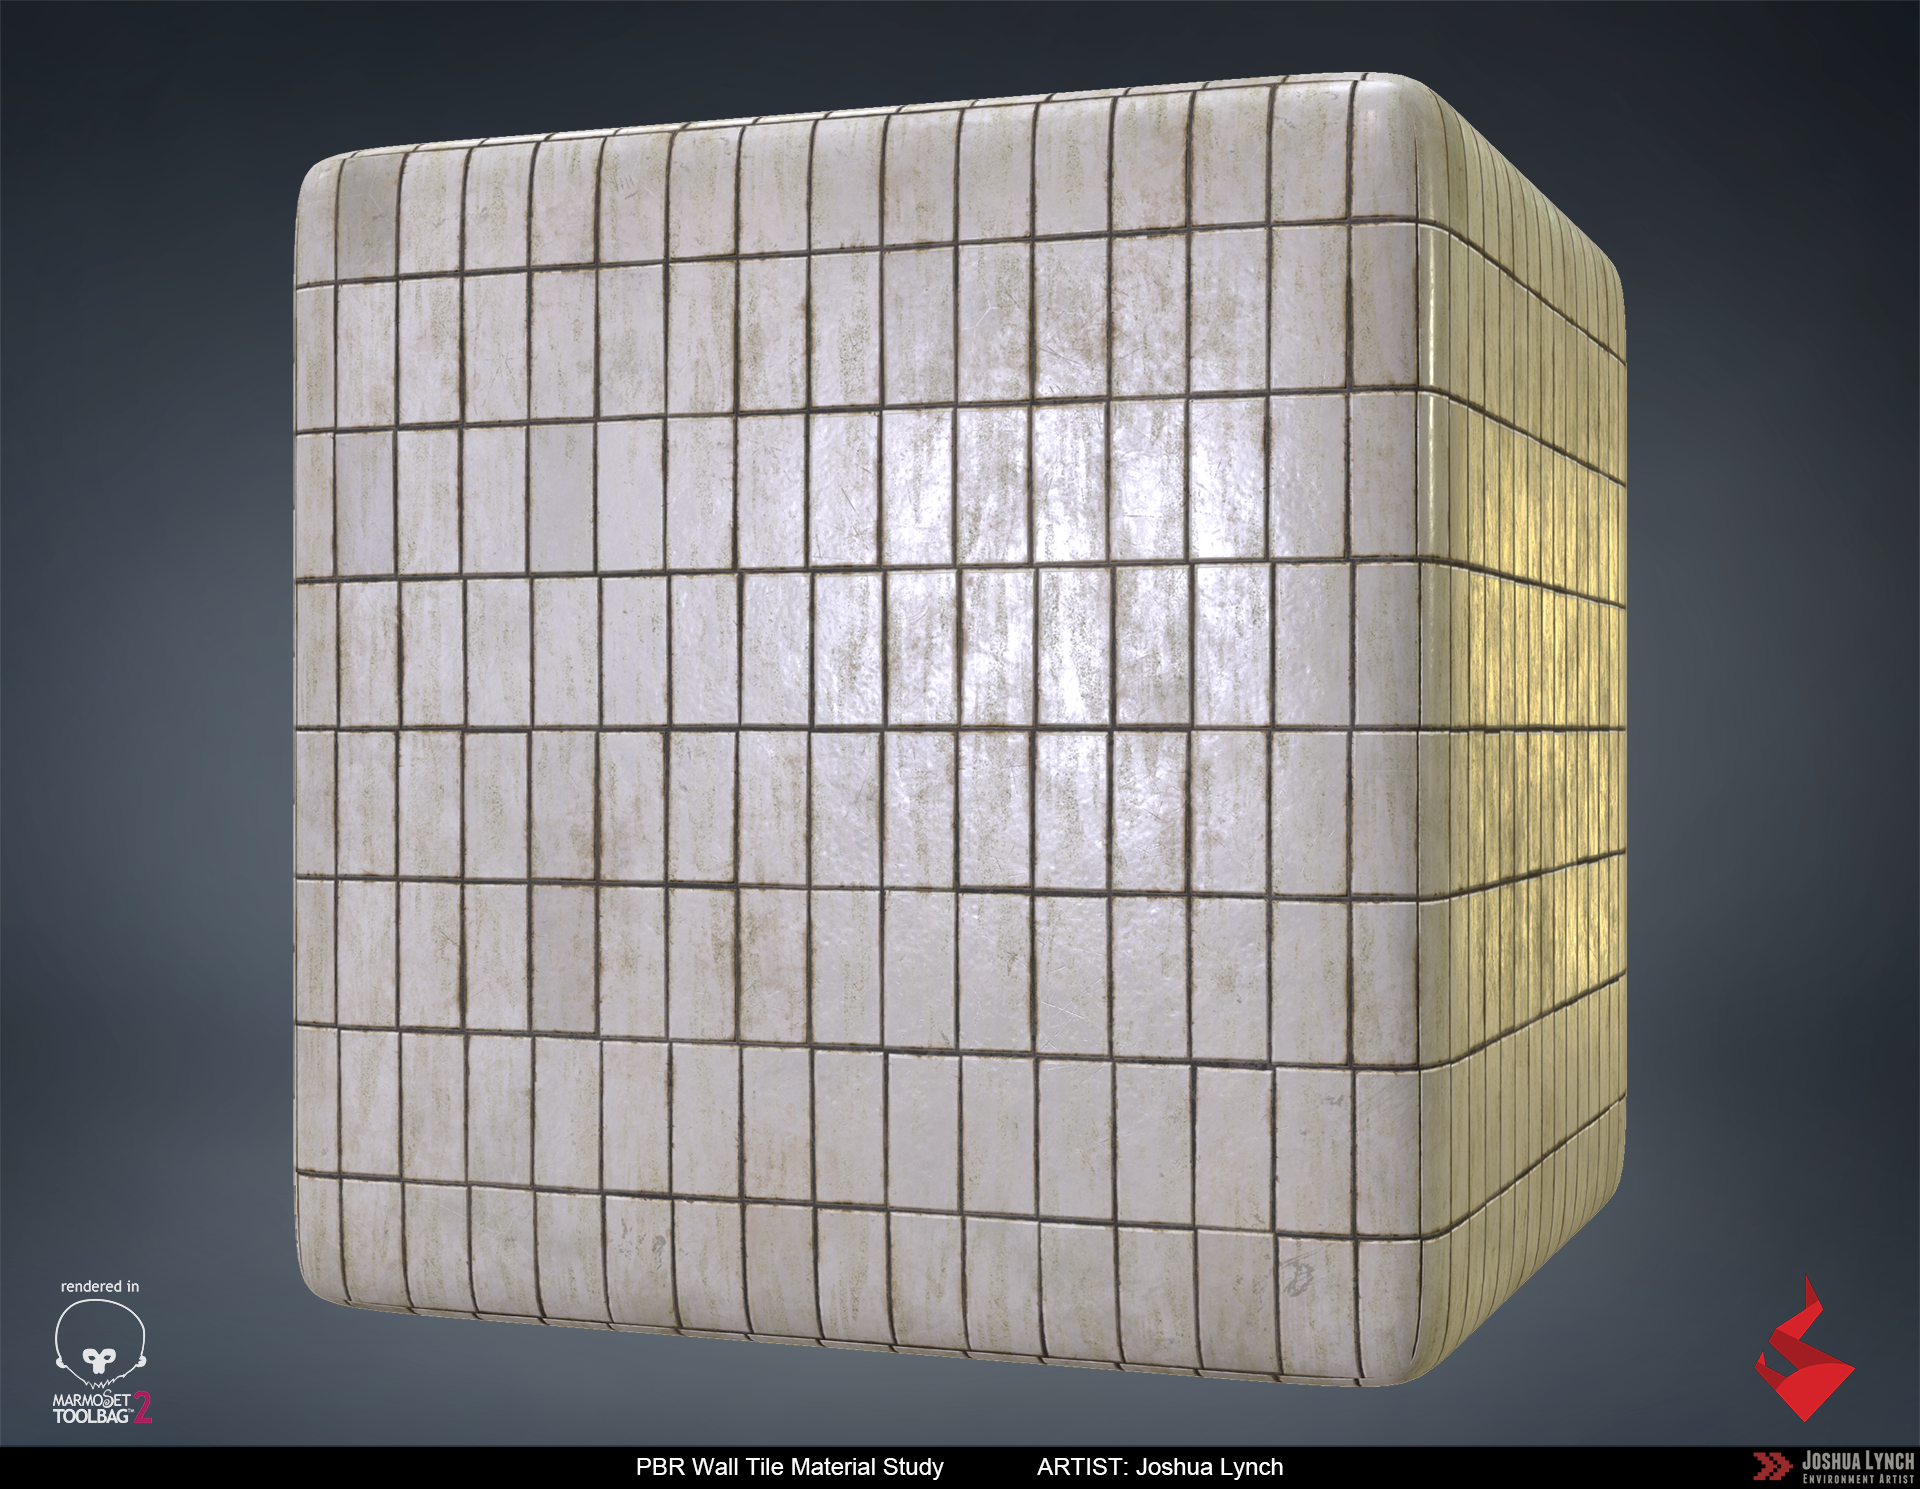 Subway_Wall_Tile_Cube_Vertical_Layout_Comp_Josh_Lynch.png